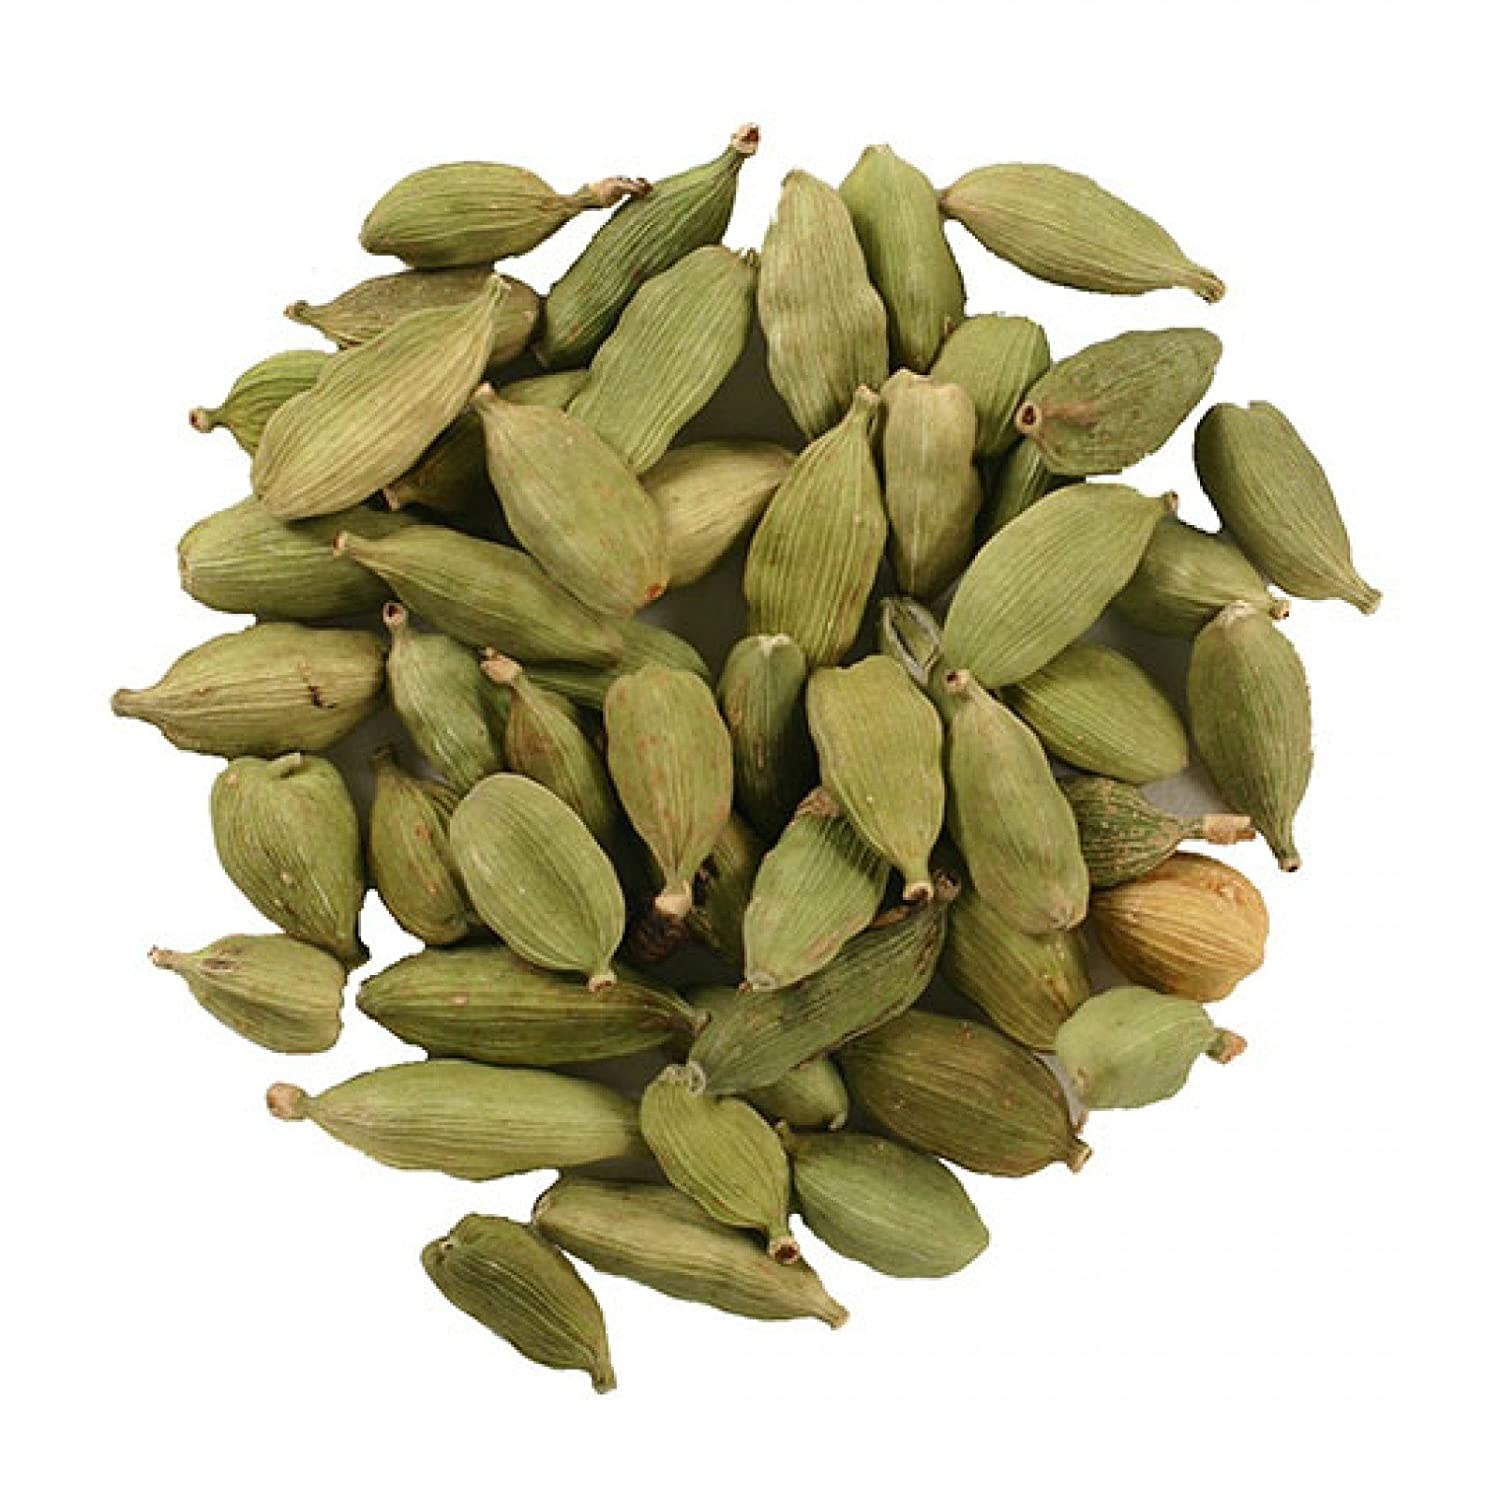 Amazon Com Frontier Co Op Cardamom Pods Green Whole Kosher 1 Lb Bulk Bag Elettaria Cardamomum L Maton Cardamom Seeds Spices And Herbs Grocery Gourmet Food